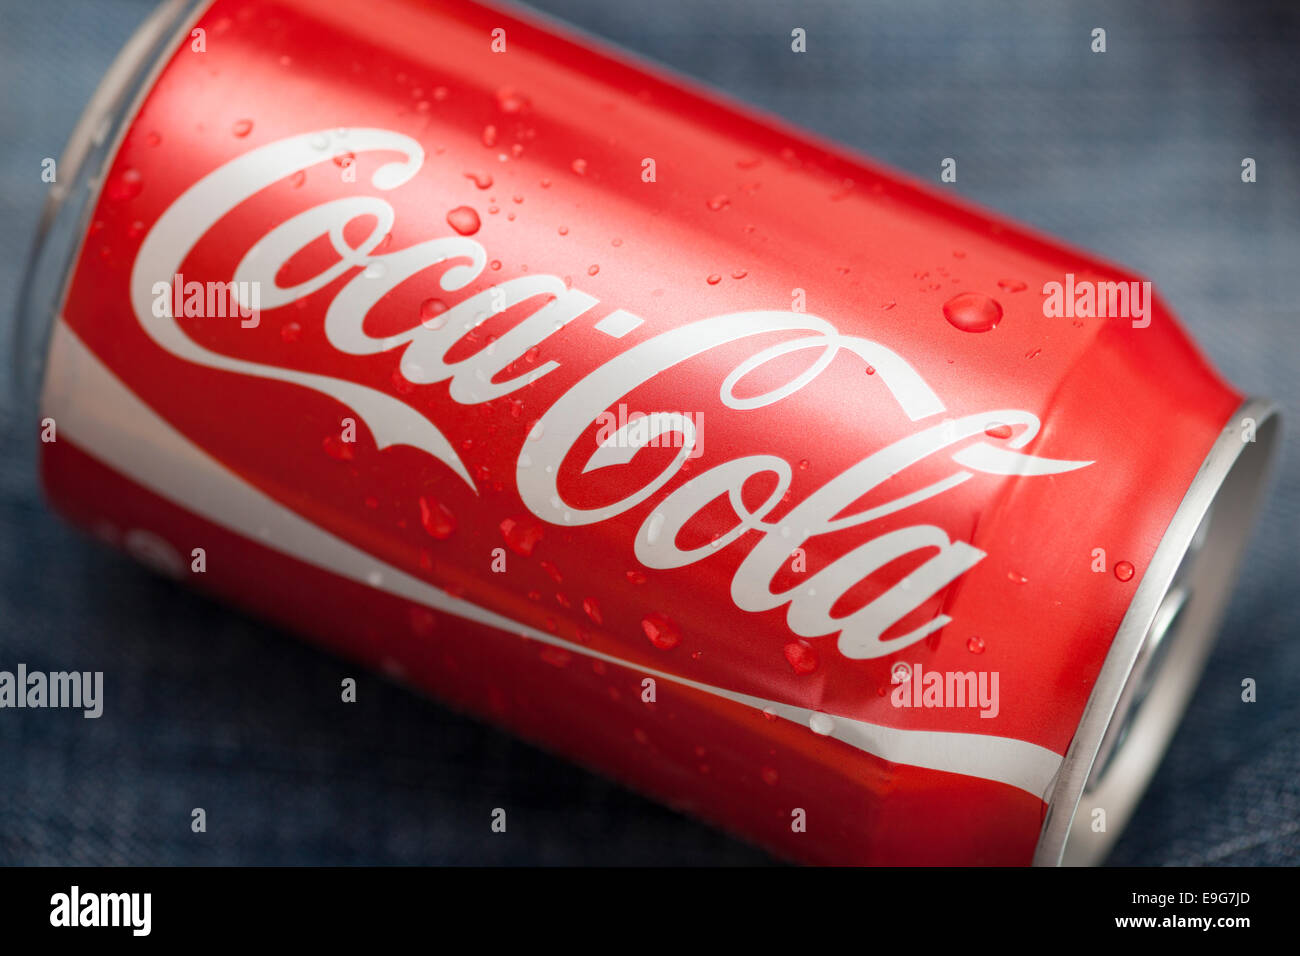 Tambov, Russian Federation - March 14, 2011 Coca-Cola can with water droplets on denim background. Studio shot. - Stock Image